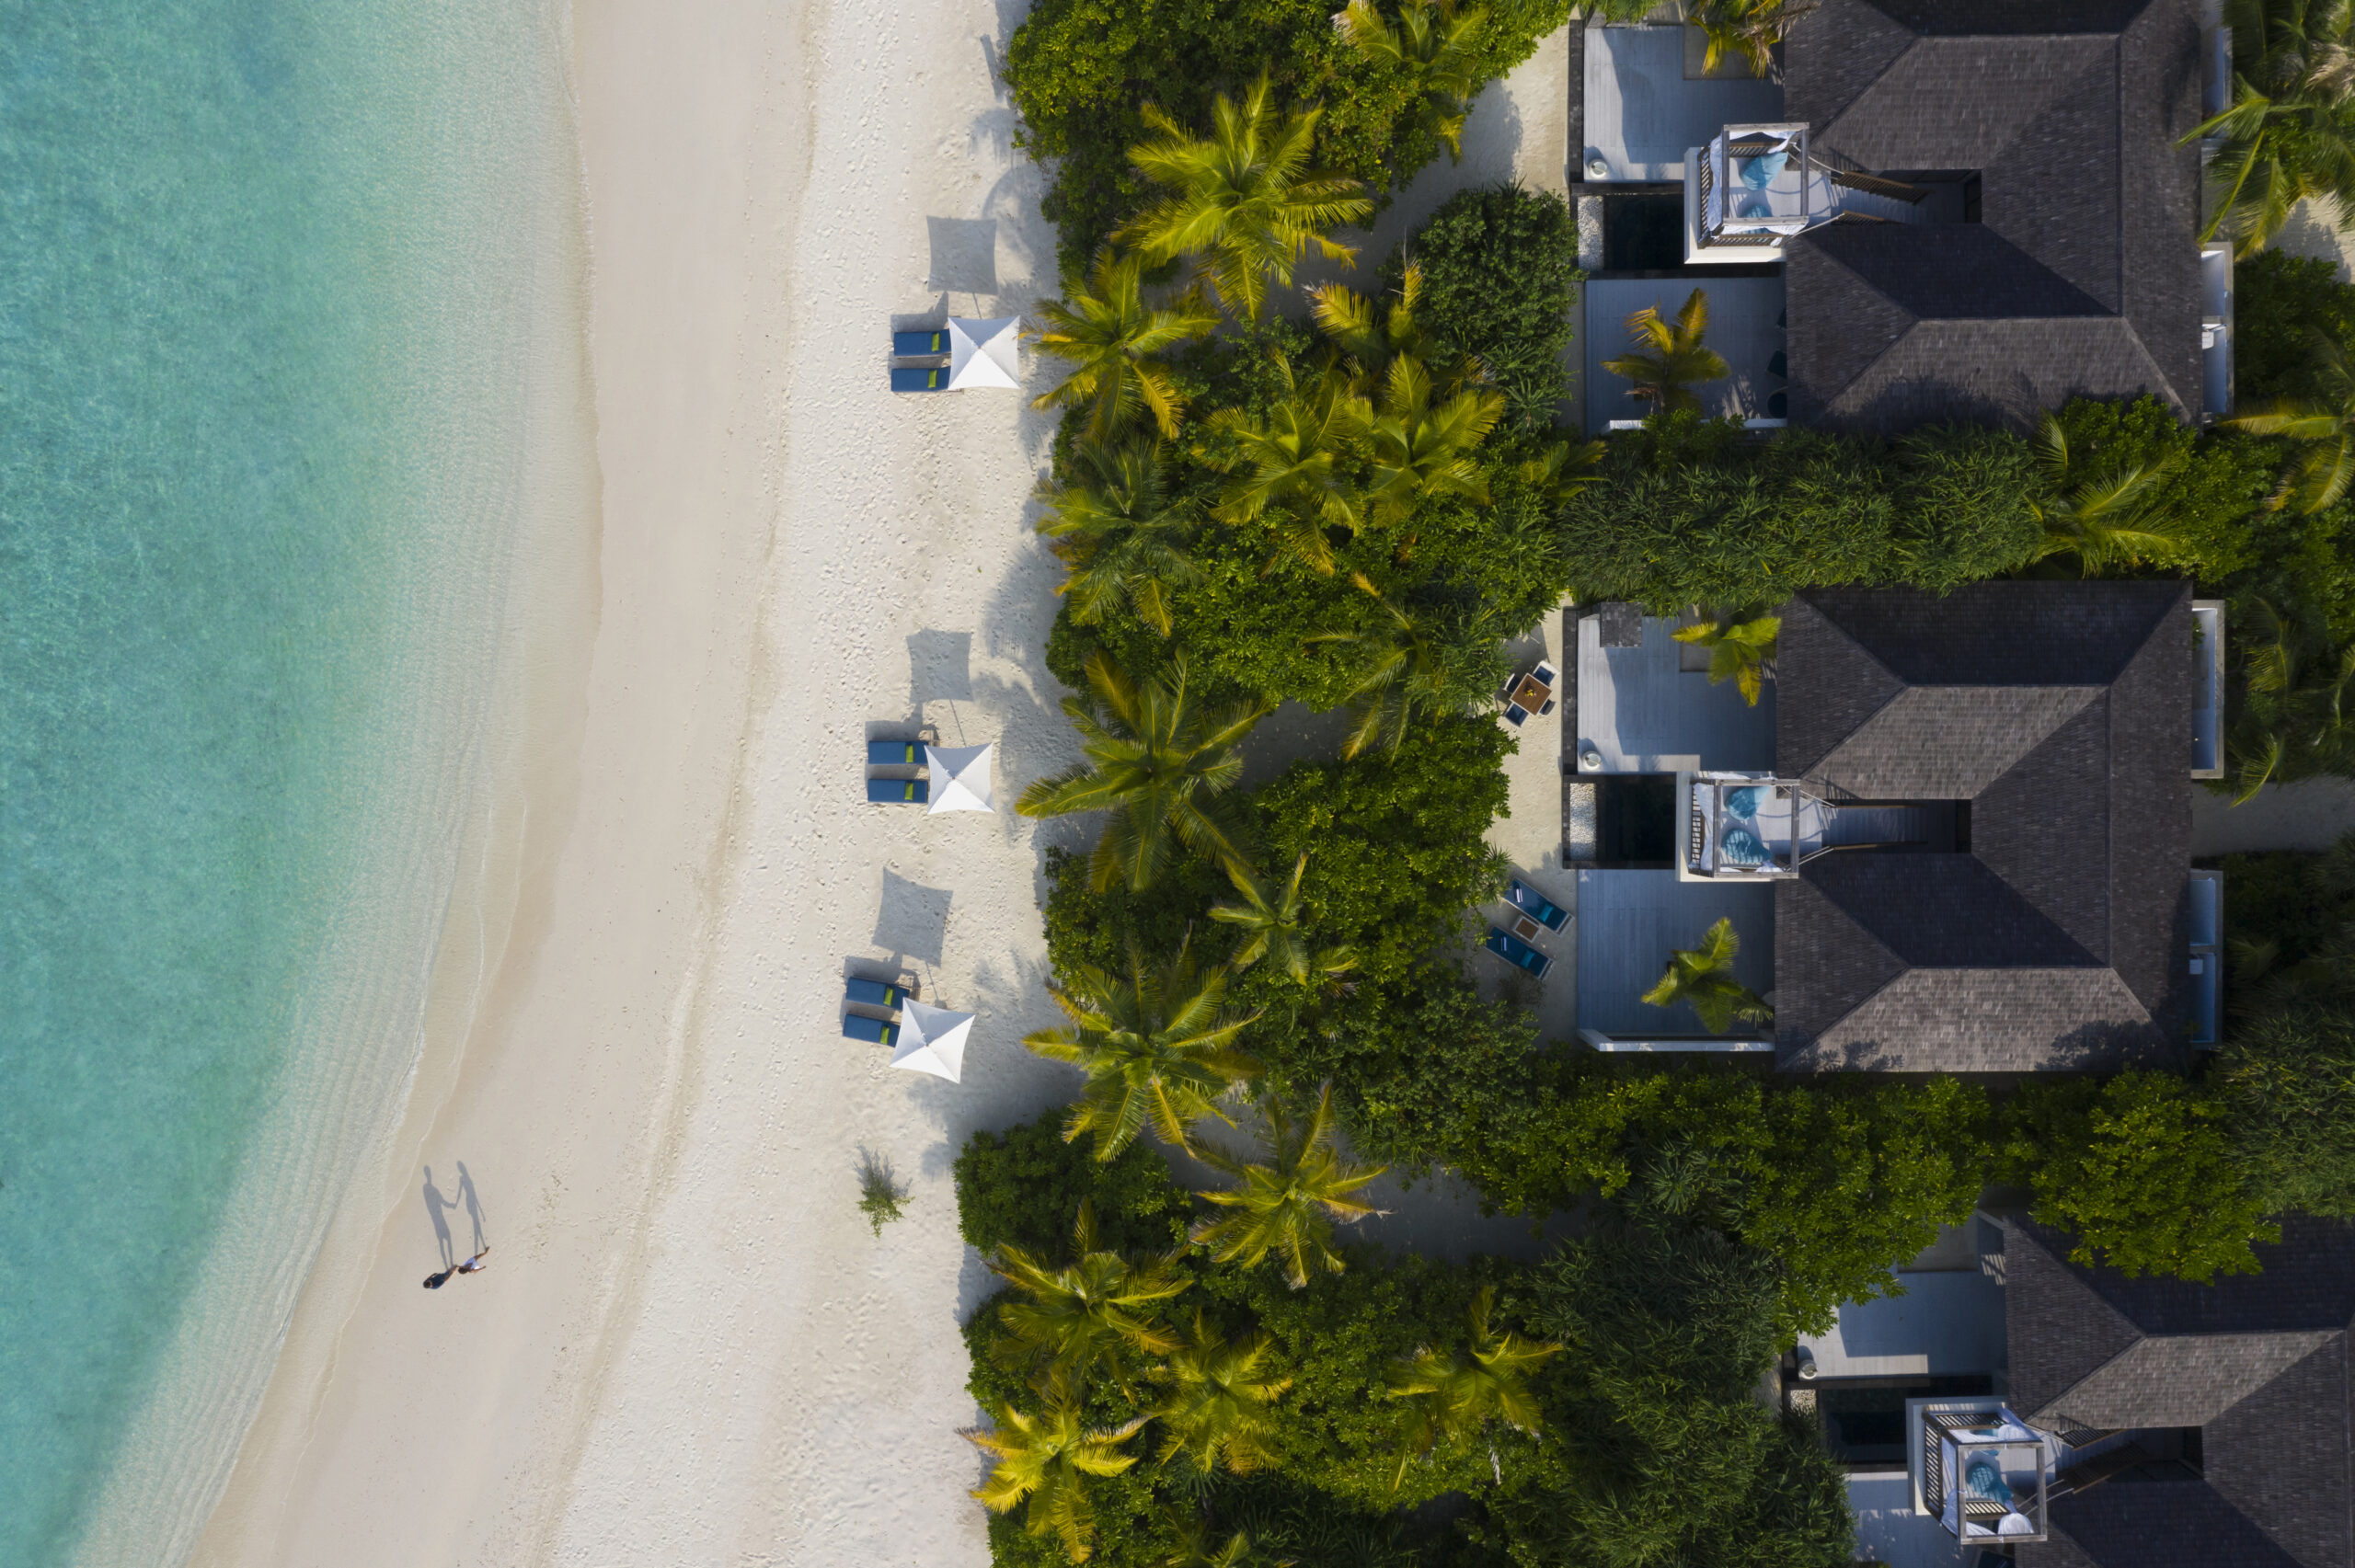 23 ноября вебинар с Mövenpick Resort Kuredivaru Maldives!